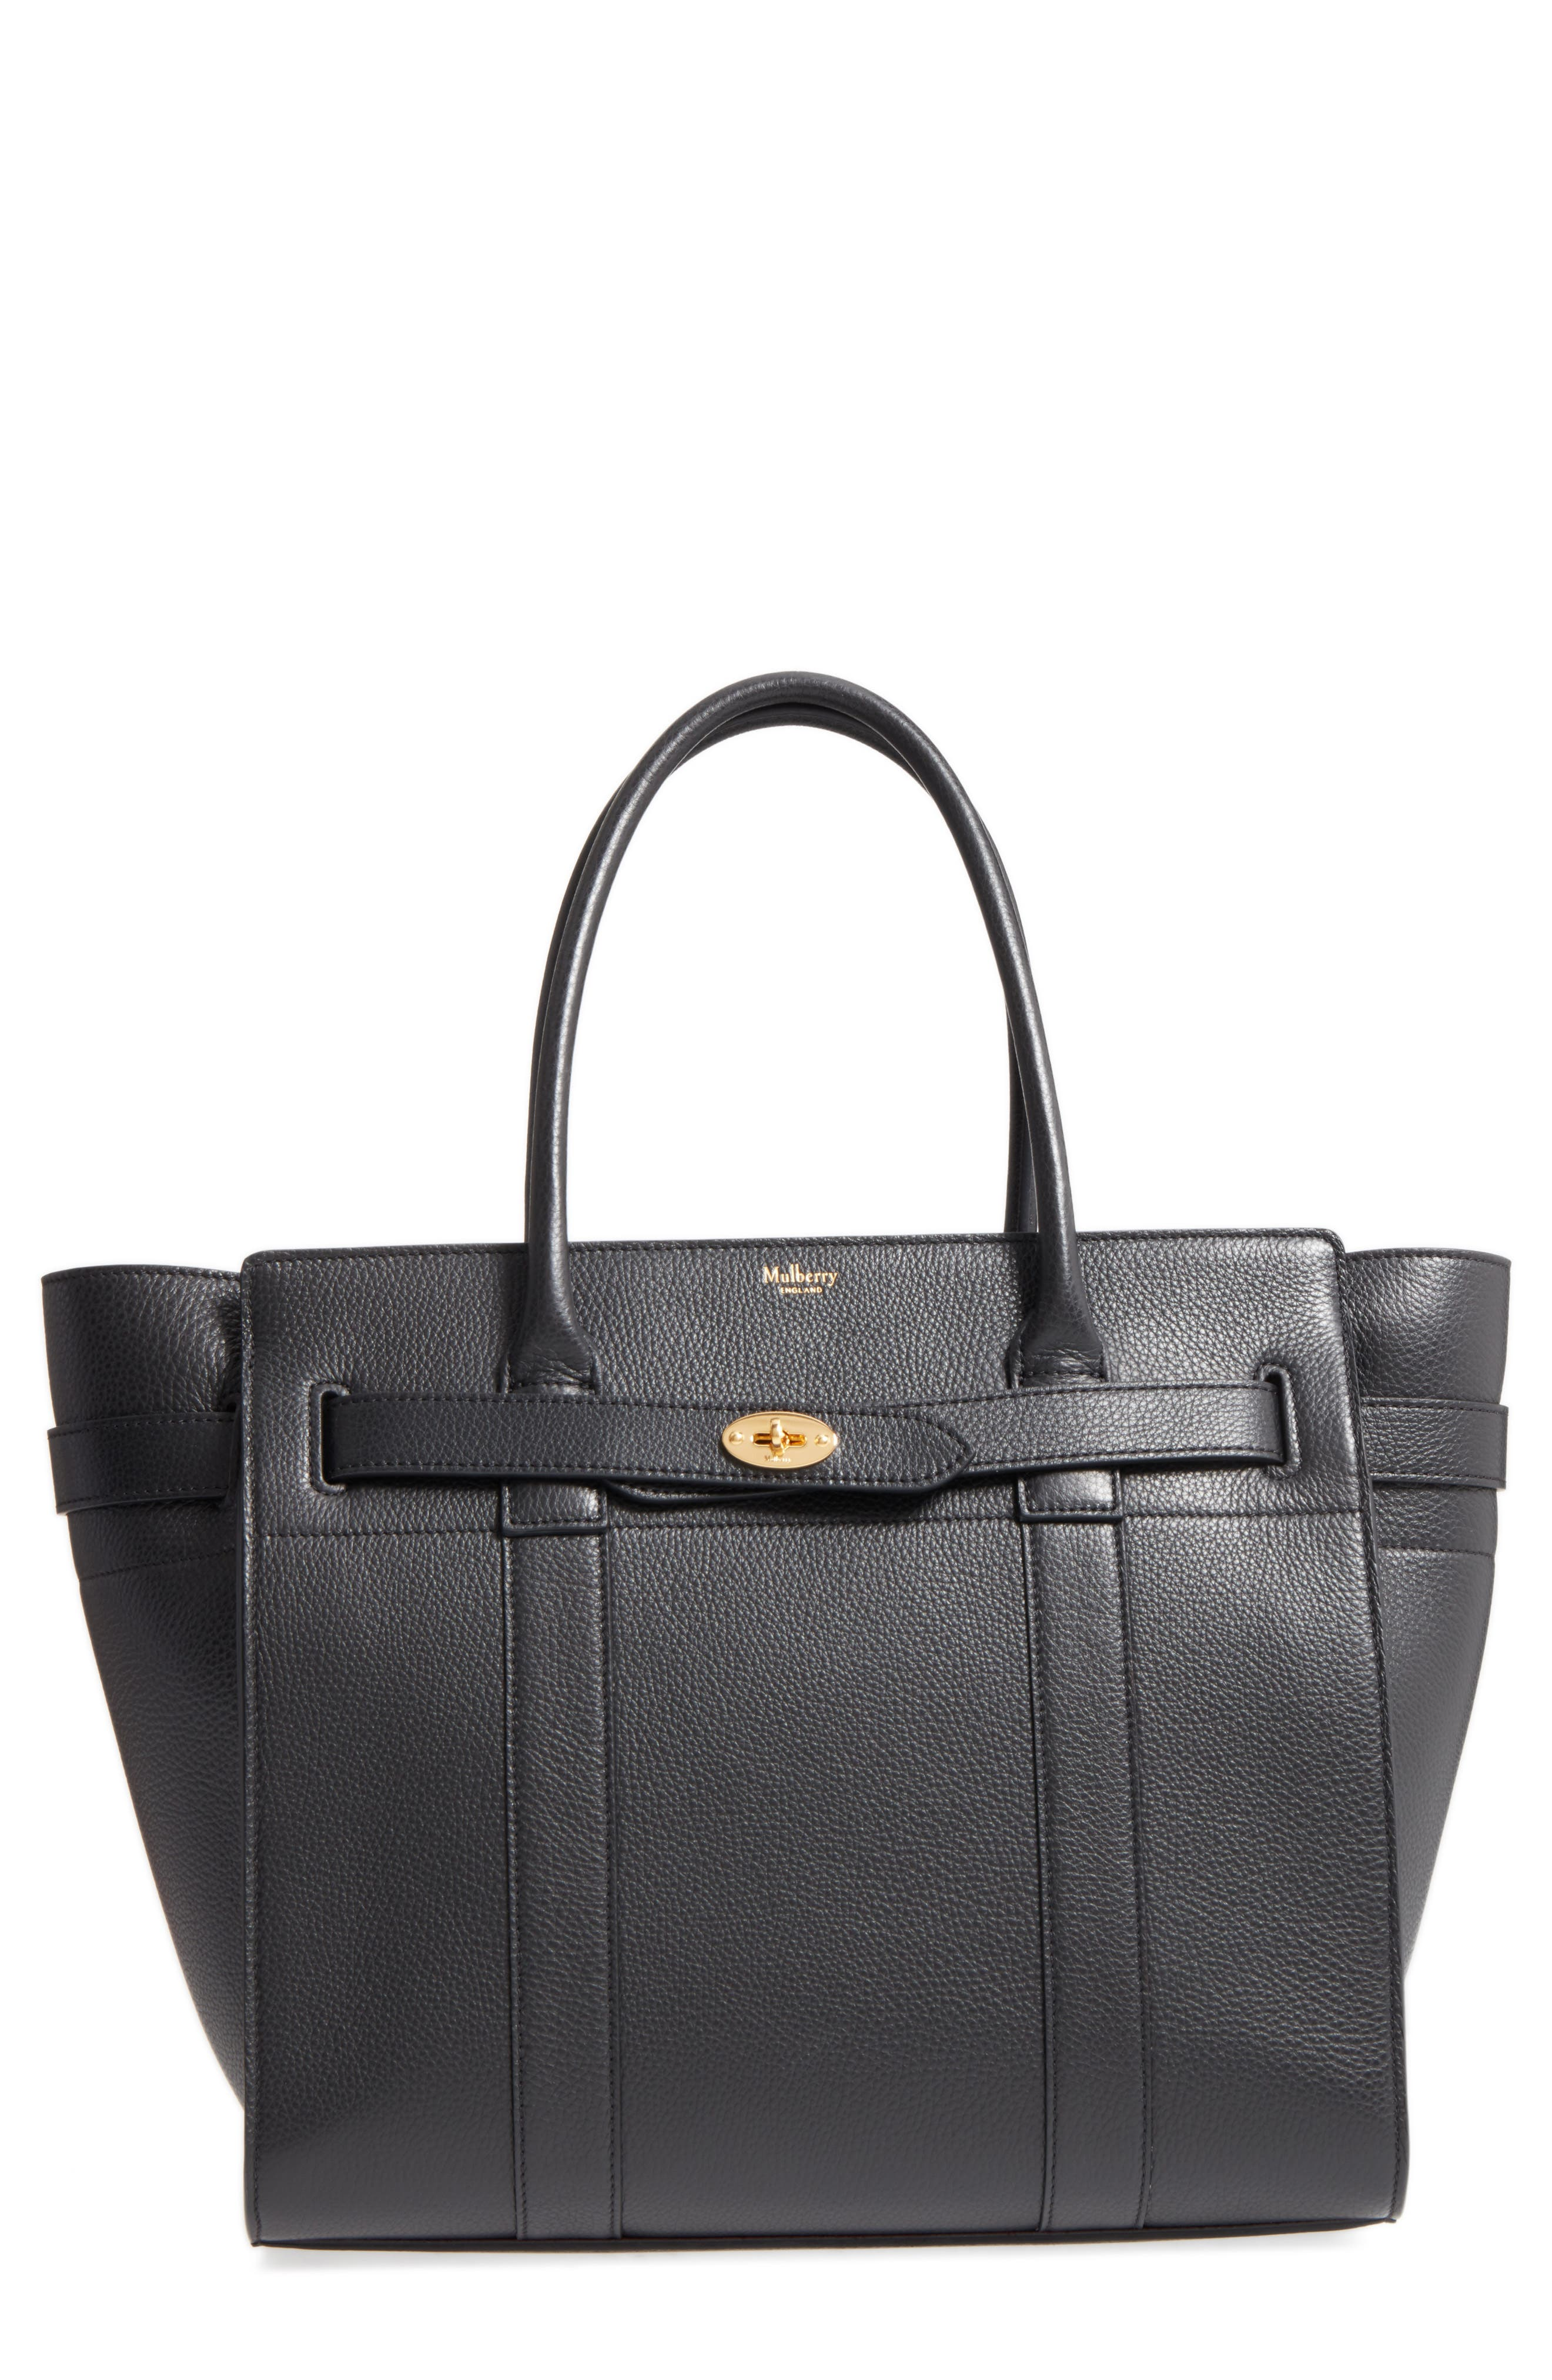 Mulberry Large Bayswater Leather Tote